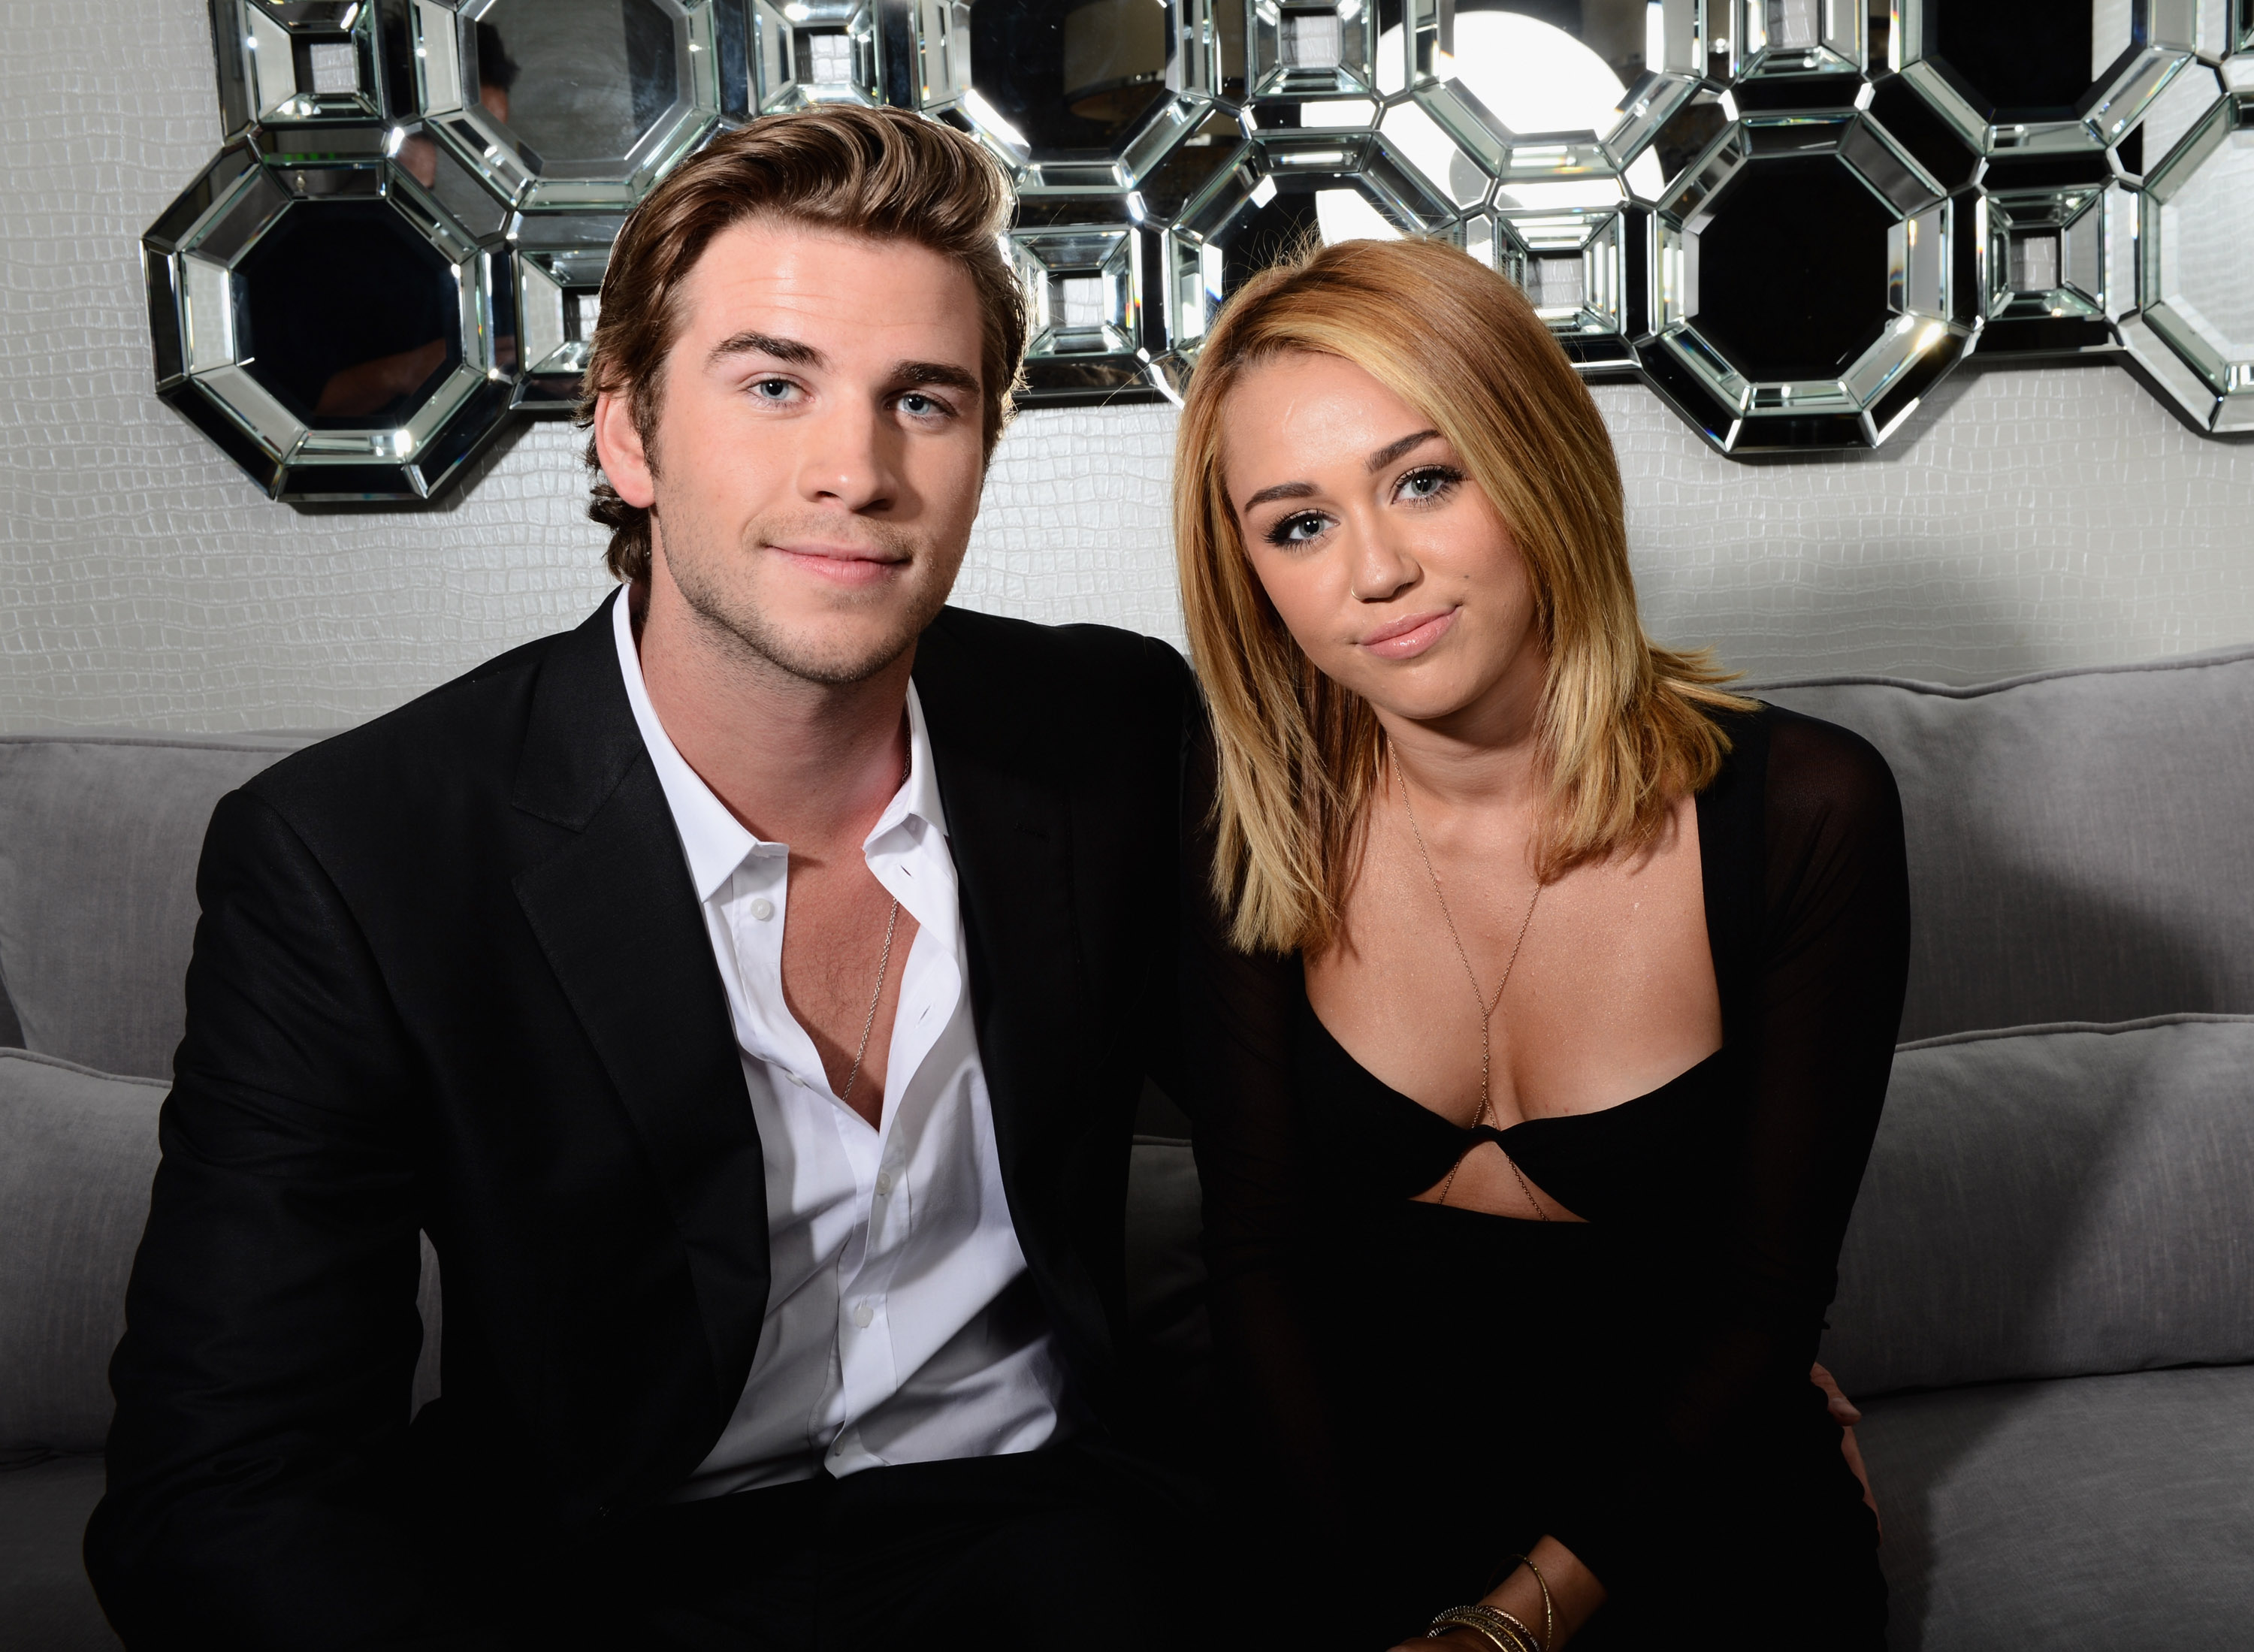 liam hemsworth and miley cyrus dating since Miley cyrus and liam hemsworth rekindled their miley cyrus quotes about liam hemsworth 7 significant things miley cyrus has said about liam hemsworth since they.